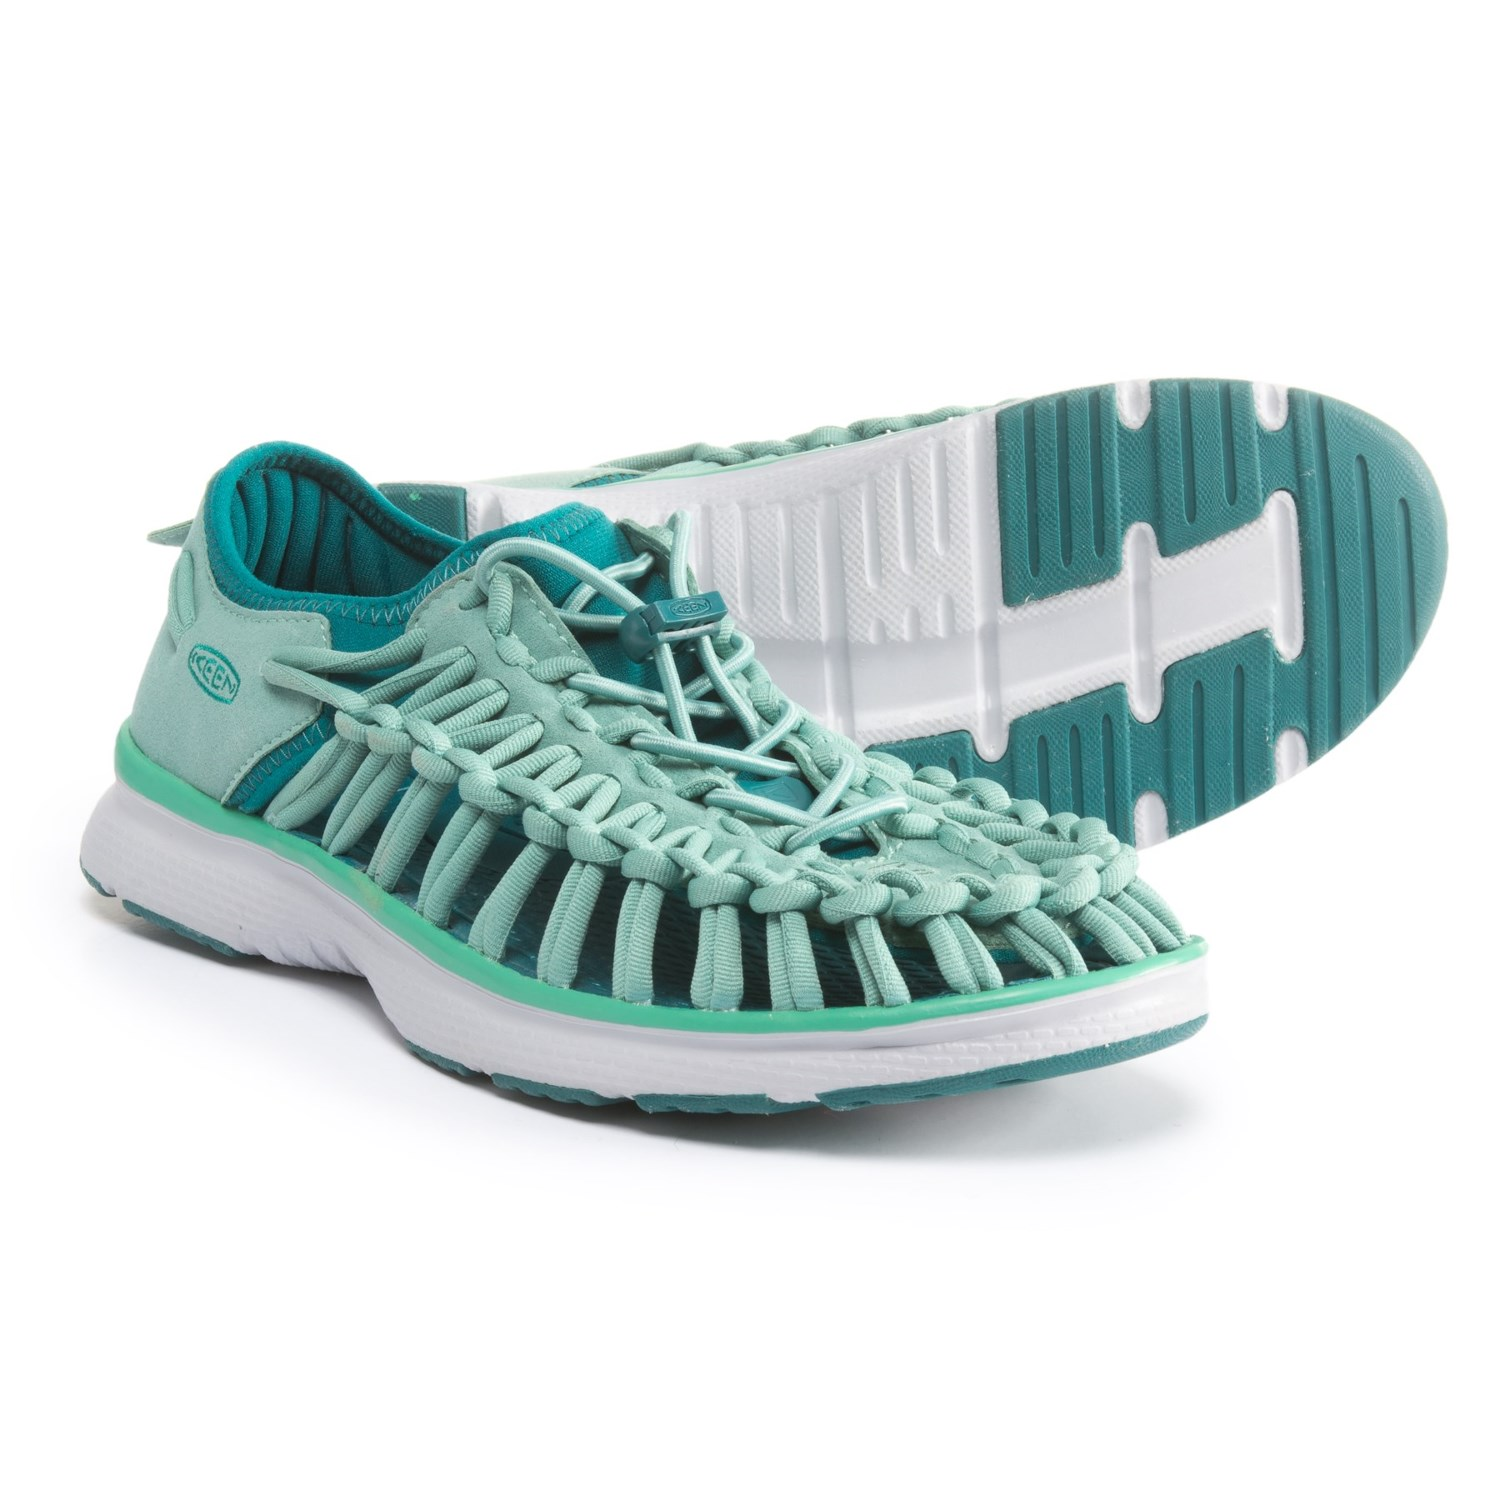 Keen Uneek O2 Closed-Back Sandals (For Women) in Malachite/Everglade